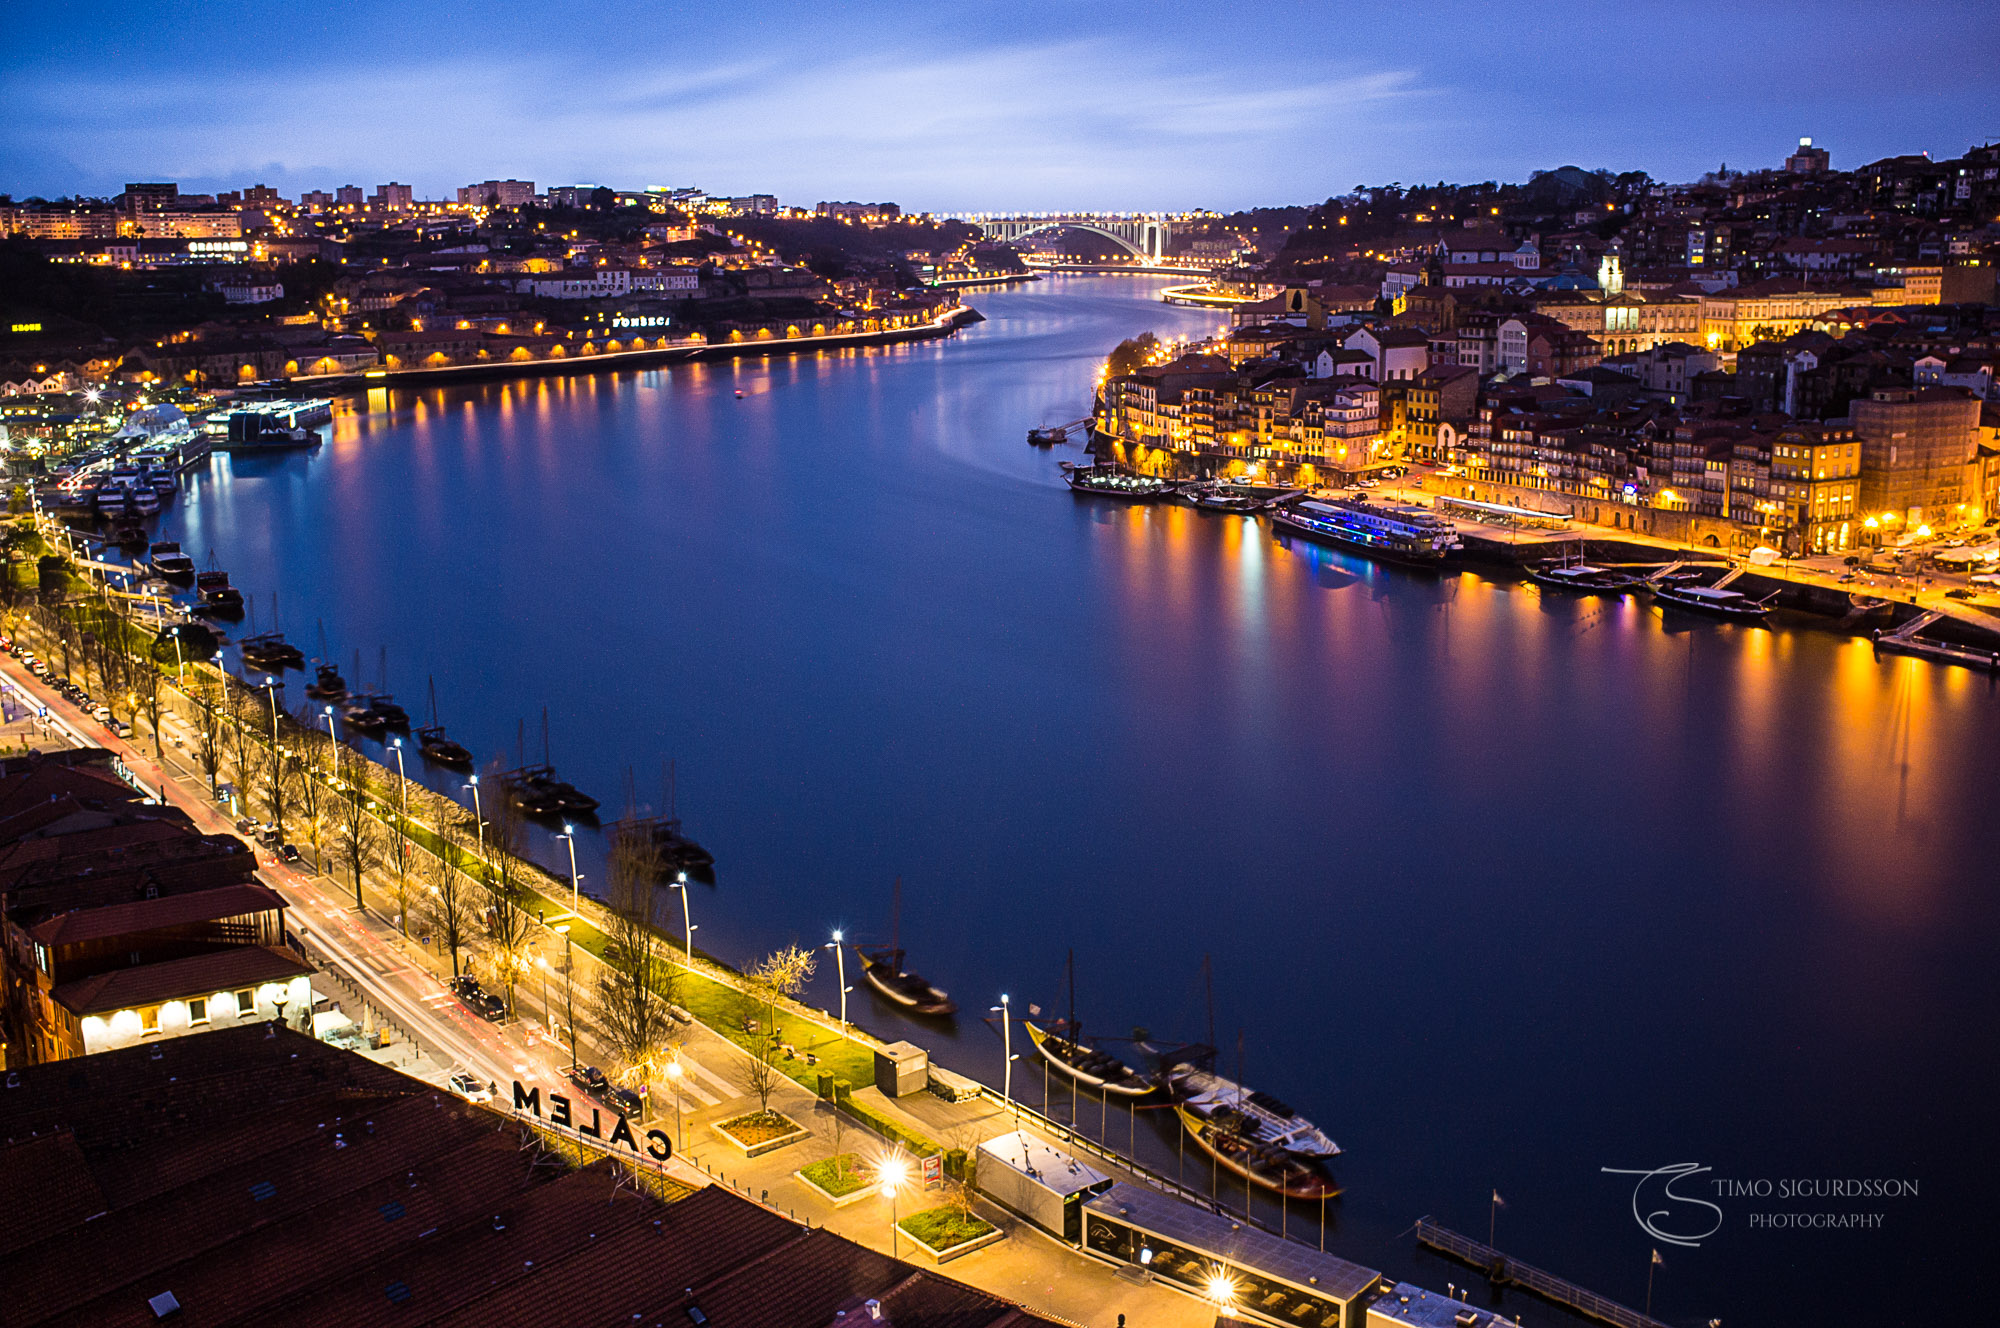 Porto, Portugal. River Douro at night.